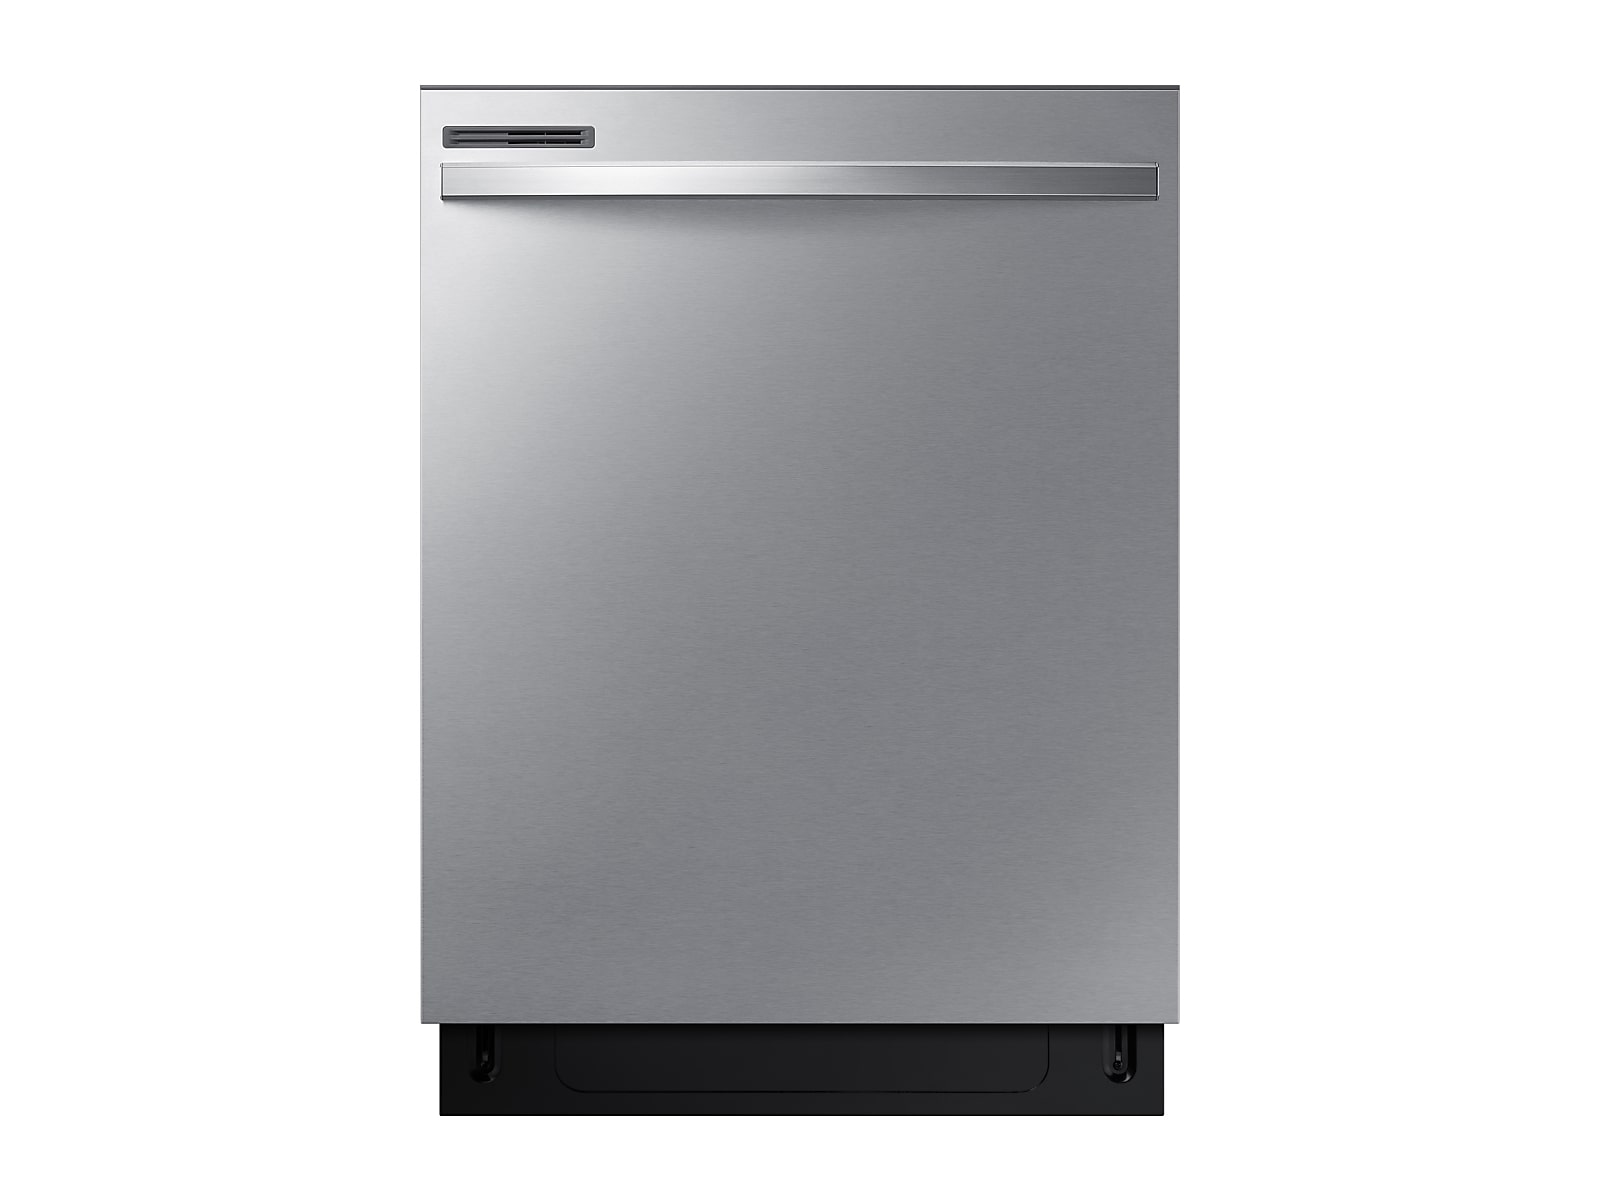 Samsung coupon: Samsung Digital Touch Control 55 dBA Dishwasher in Stainless Steel(DW80R2031US/AA)